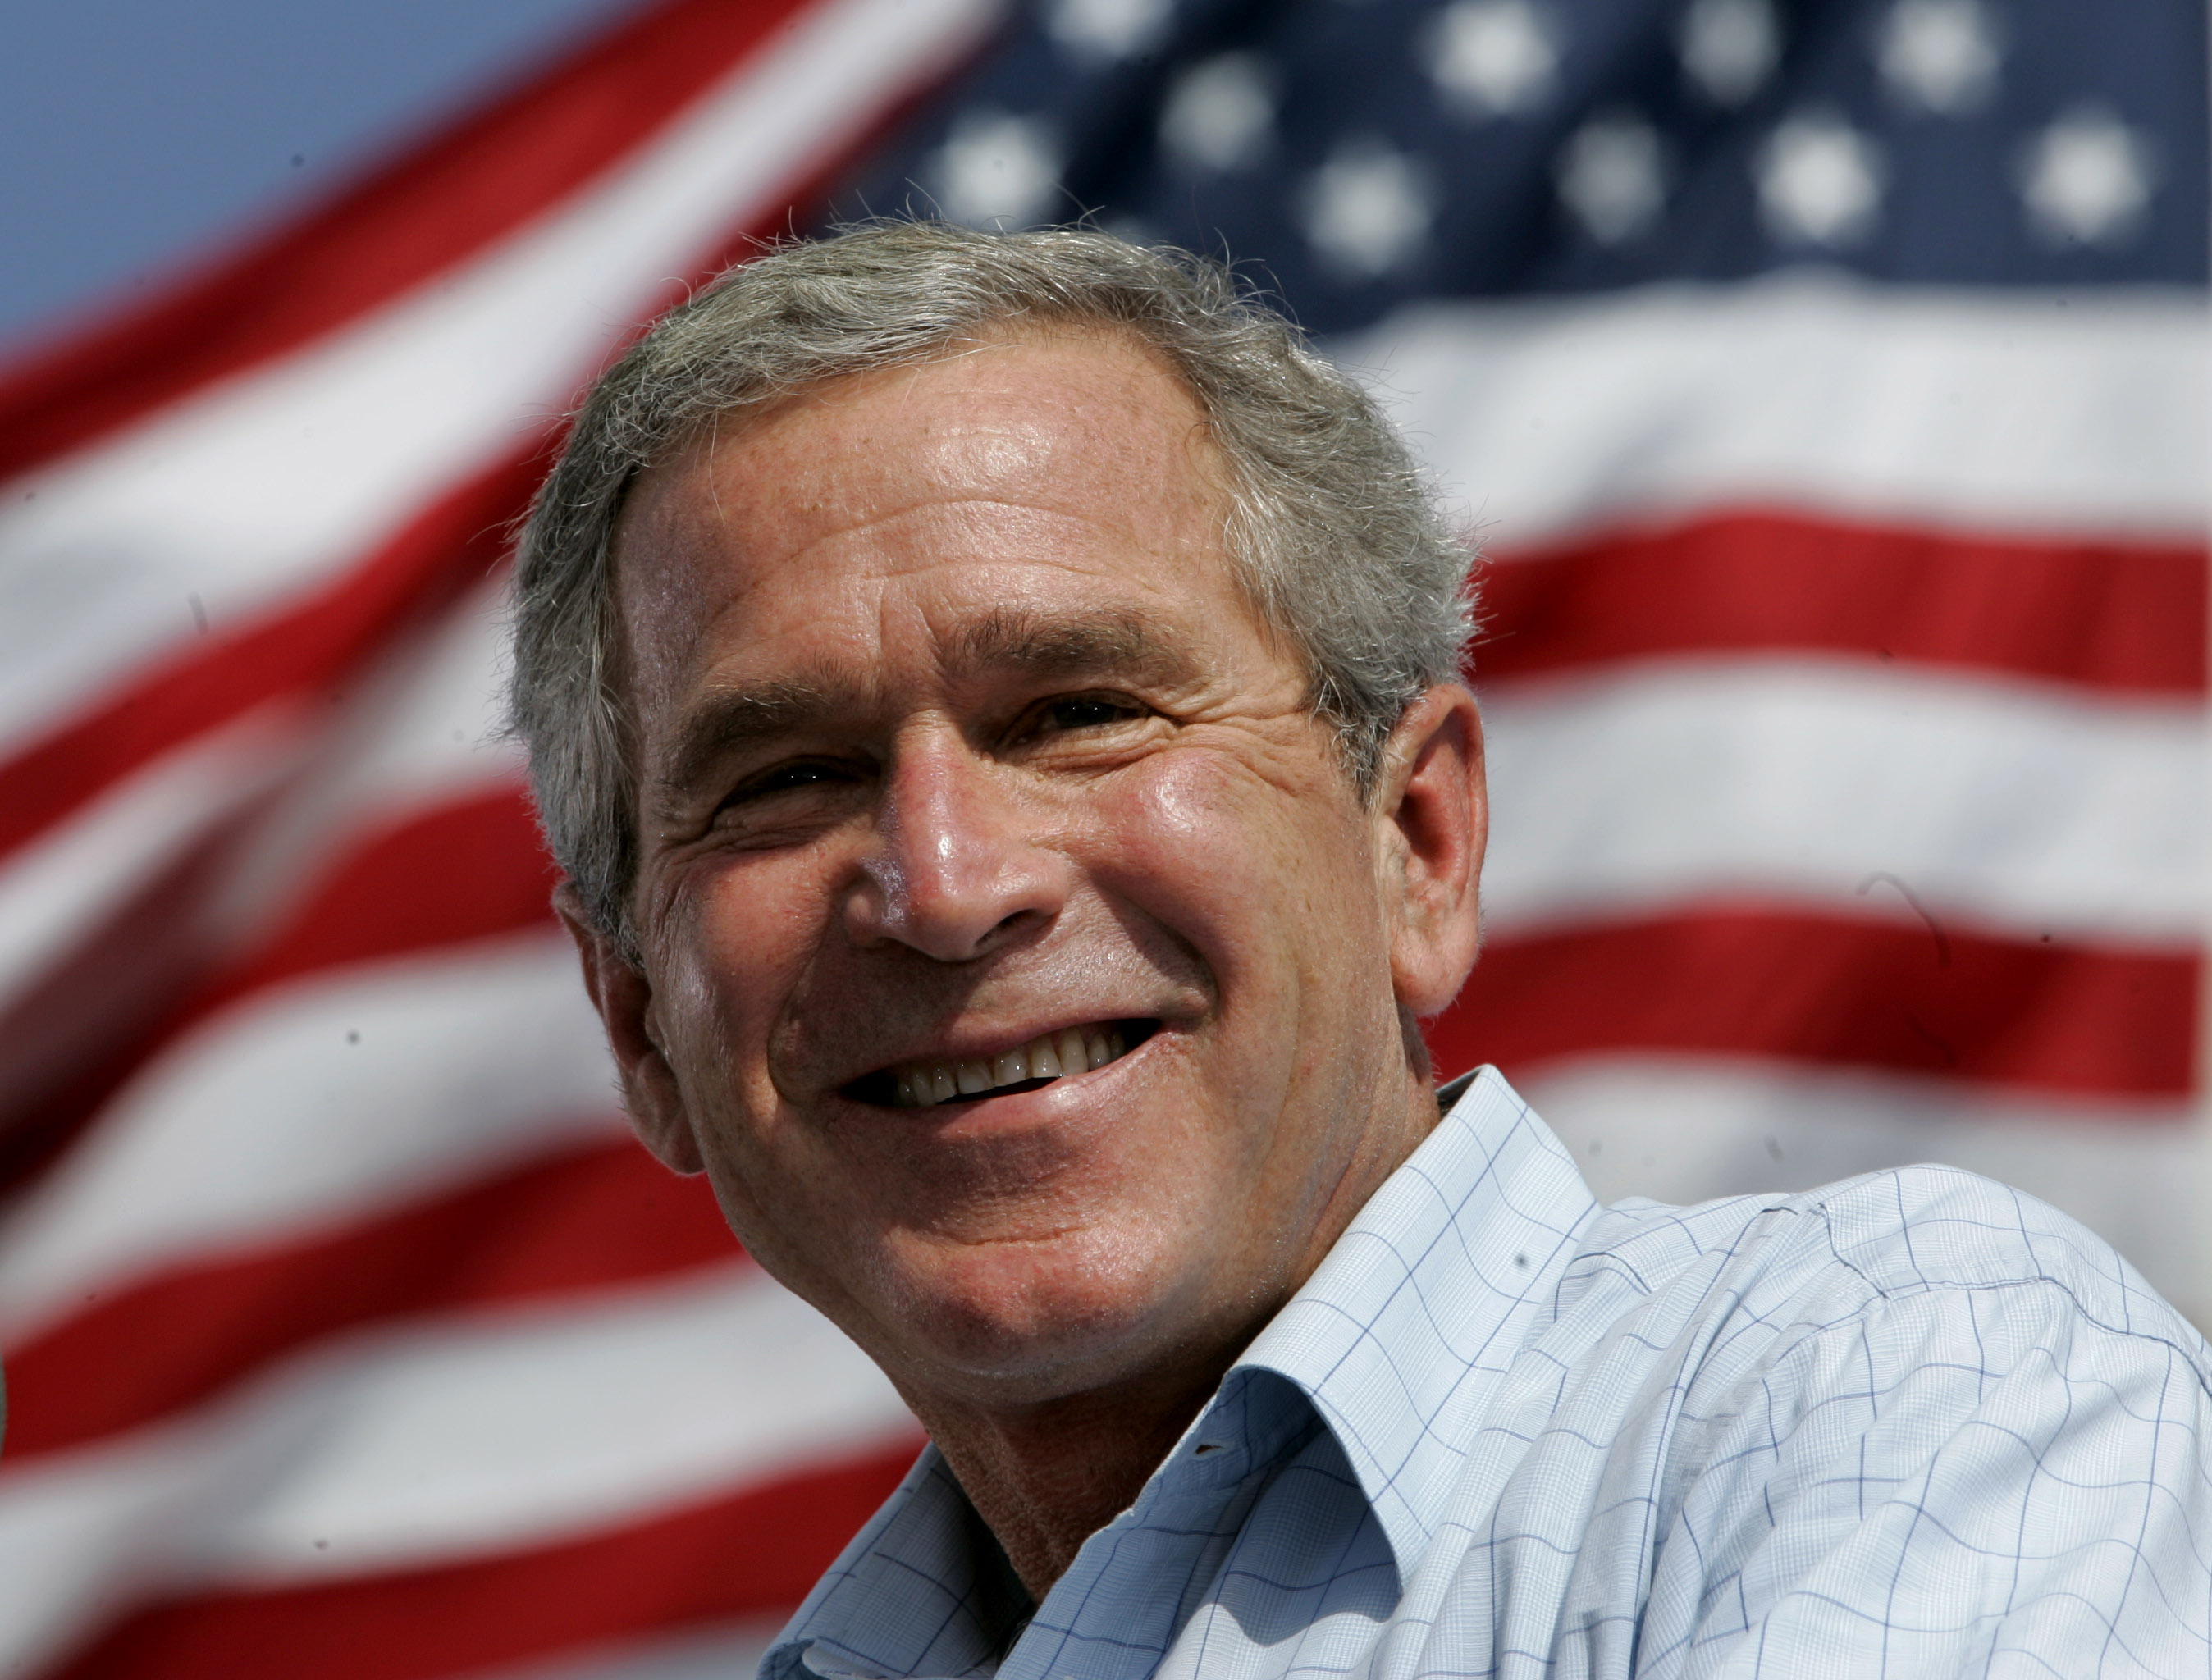 Wikipedia announces its most edited page of all time: 'George W. Bush' | Public Radio International